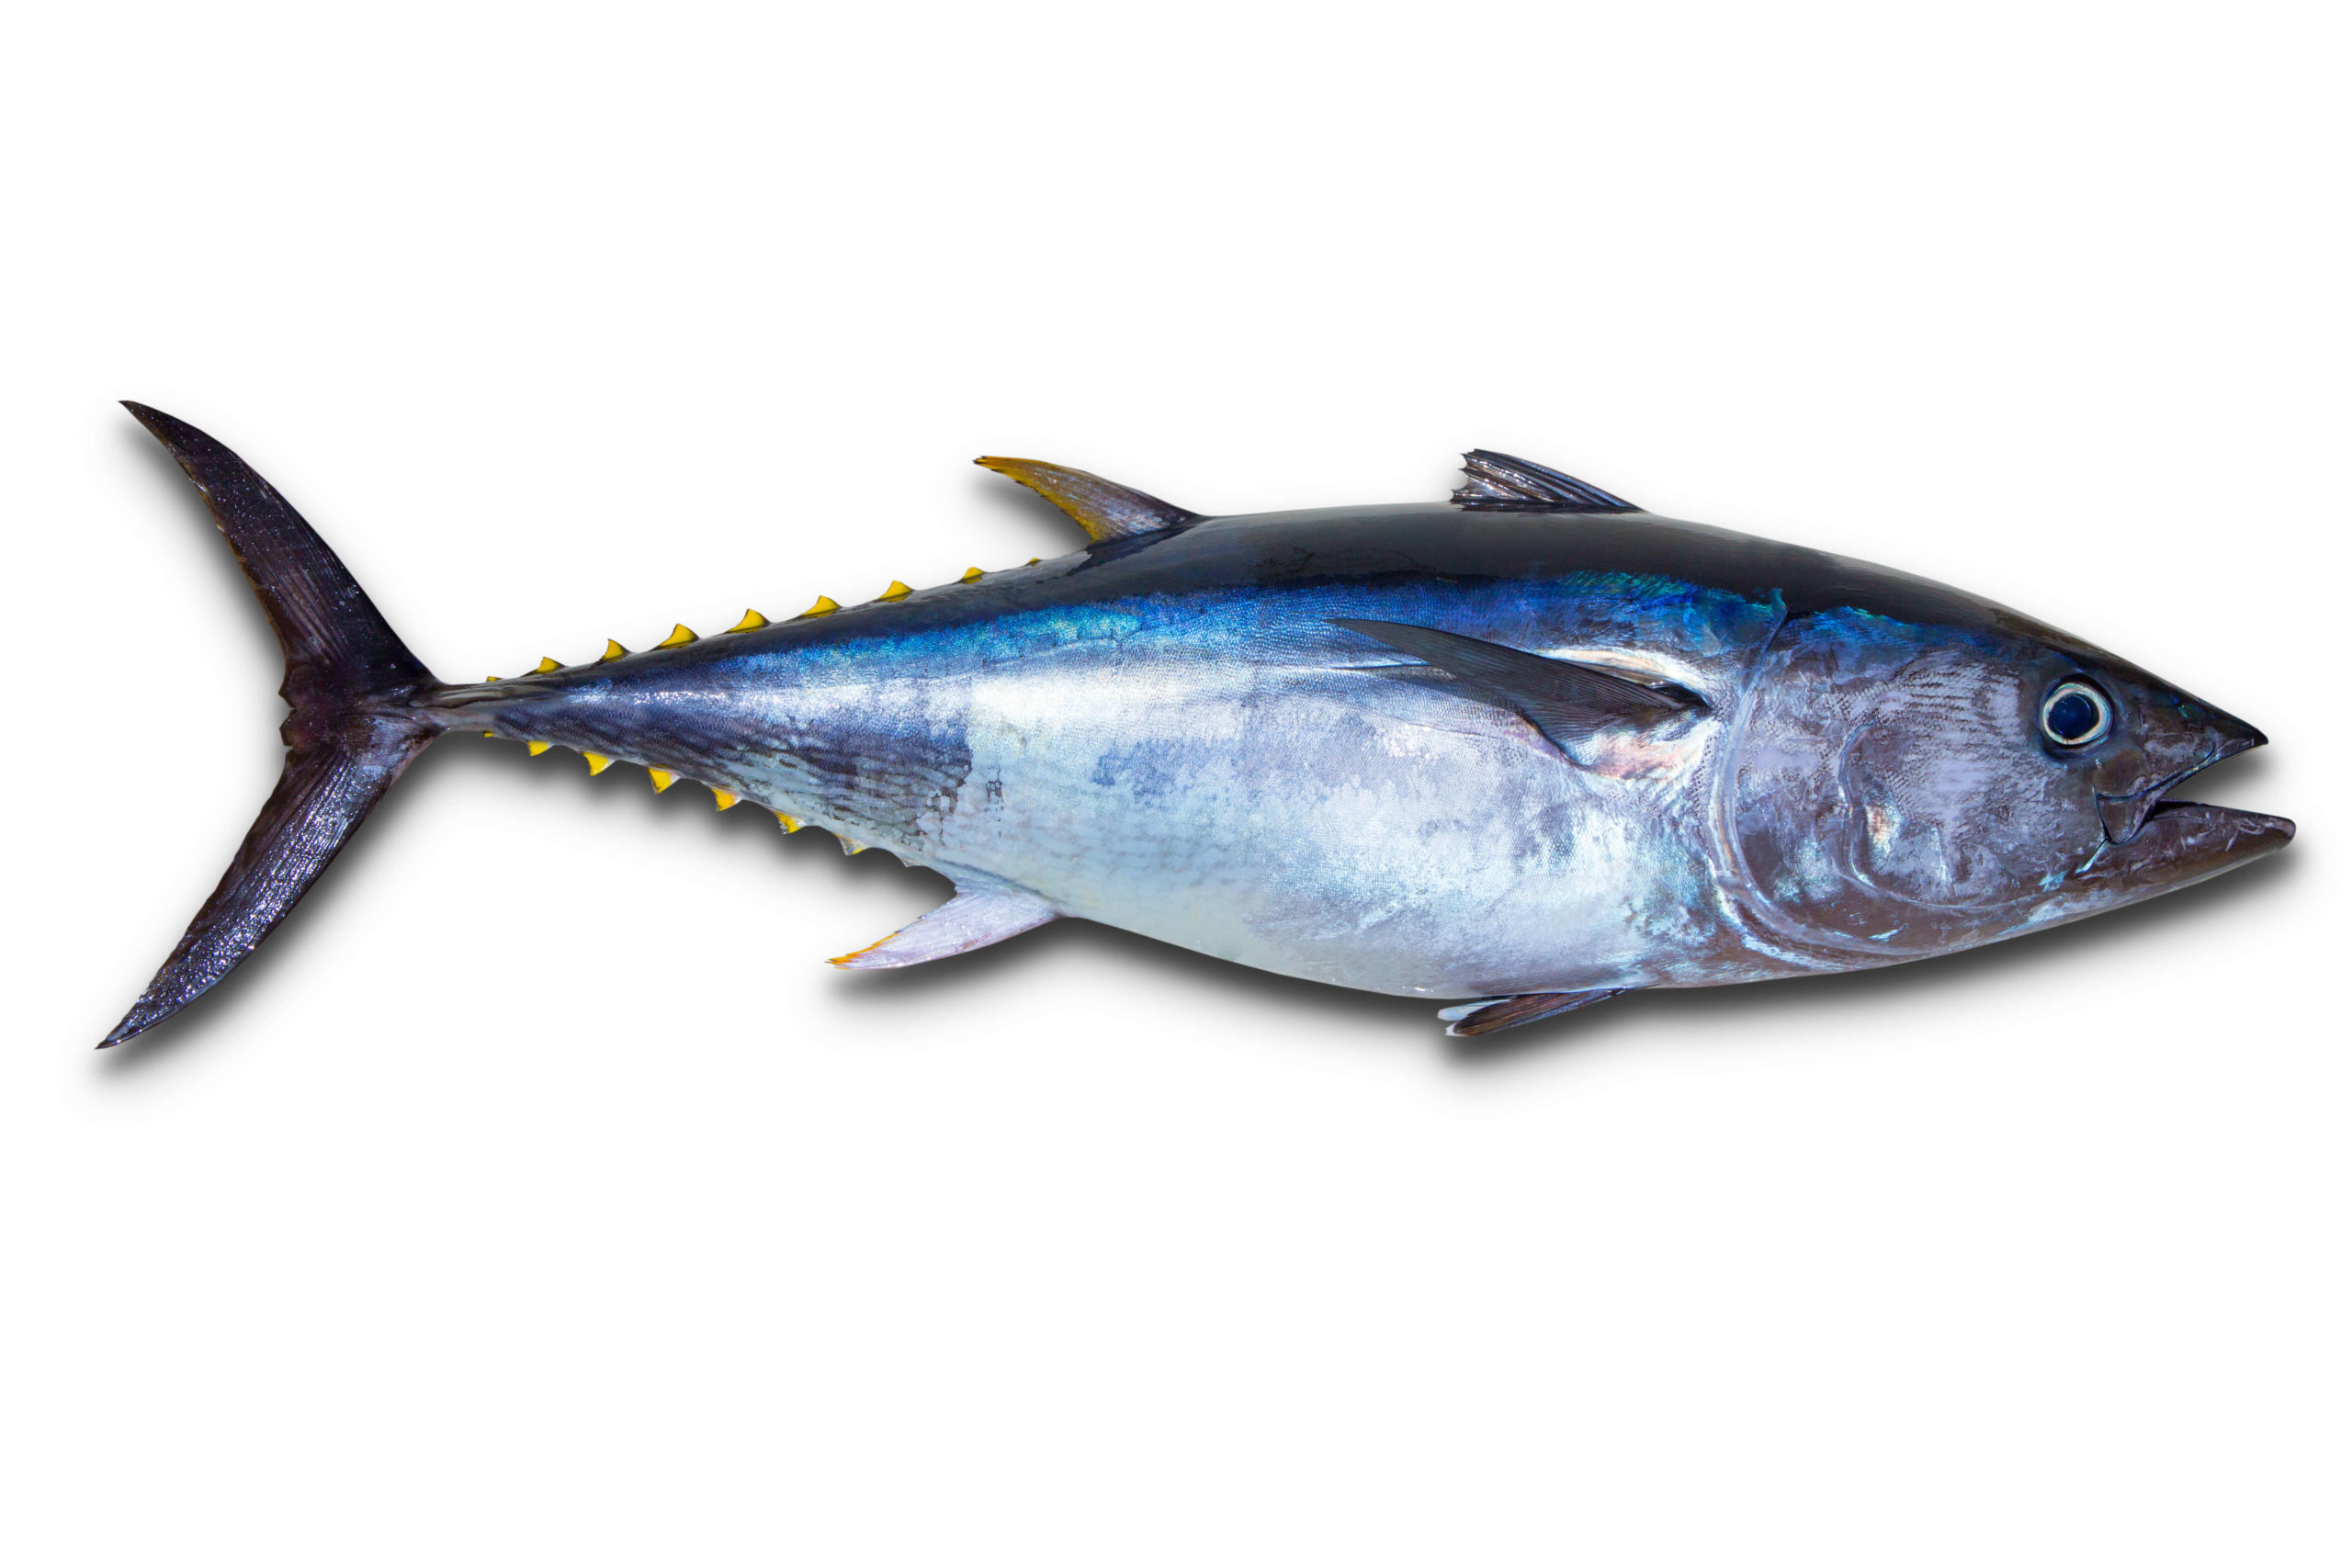 A yellowfin tuna isolated against a white background